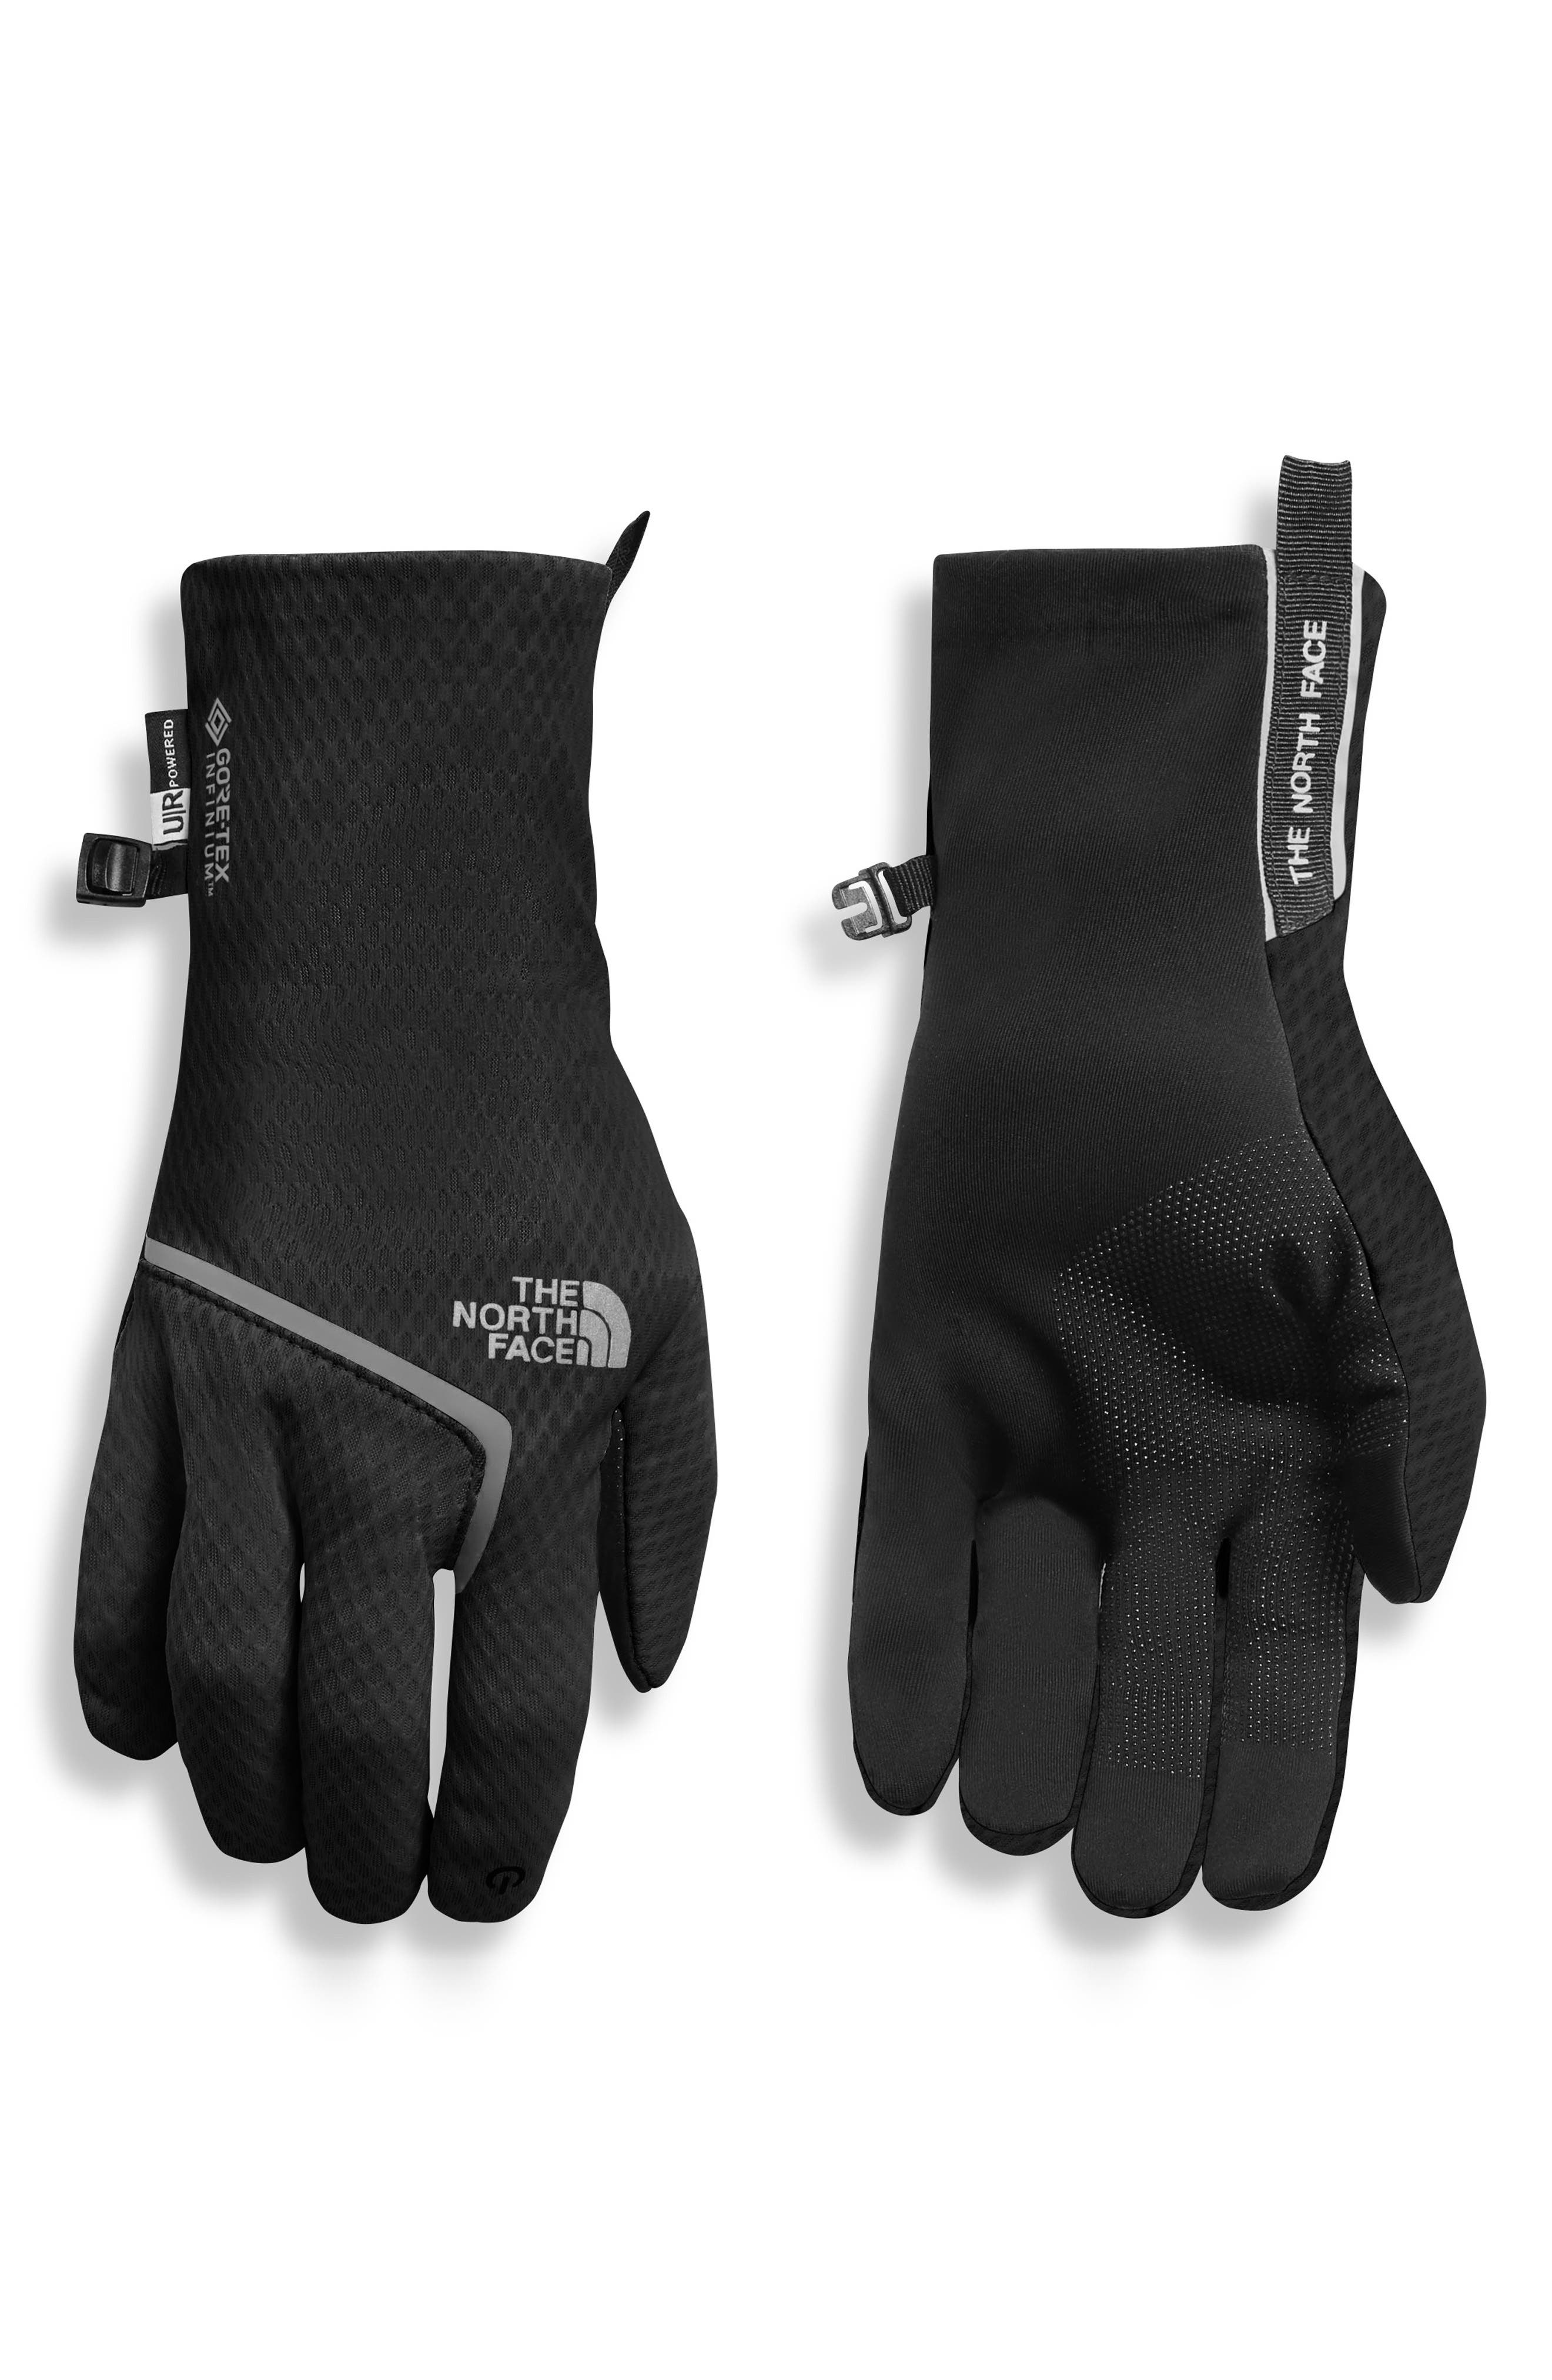 THE NORTH FACE, CloseFit Tricot Gloves, Main thumbnail 1, color, TNF BLACK